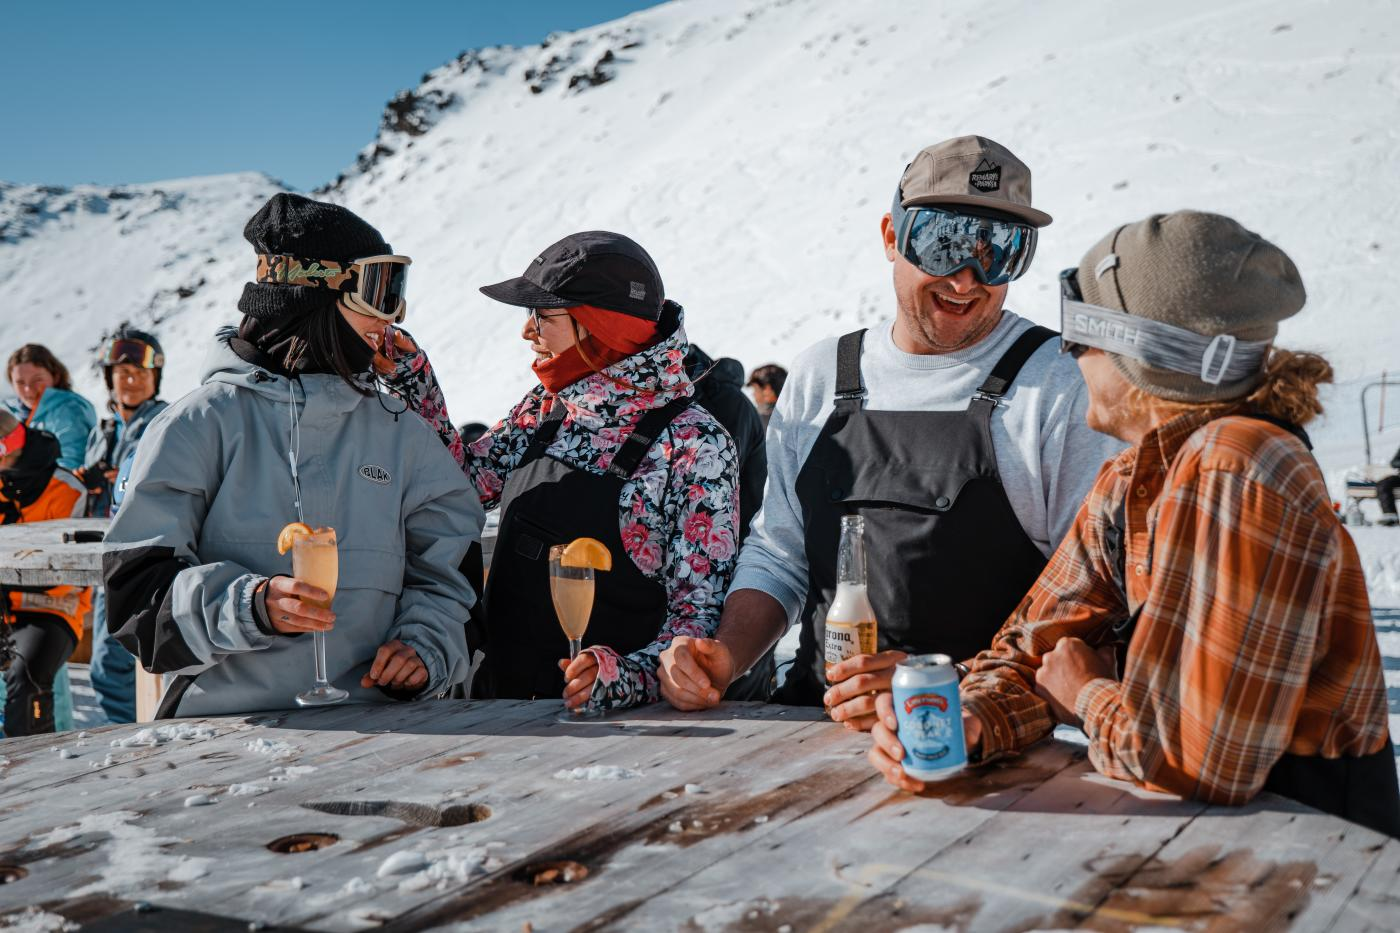 Spring Skiiers at Ice Bar, The Remarkables